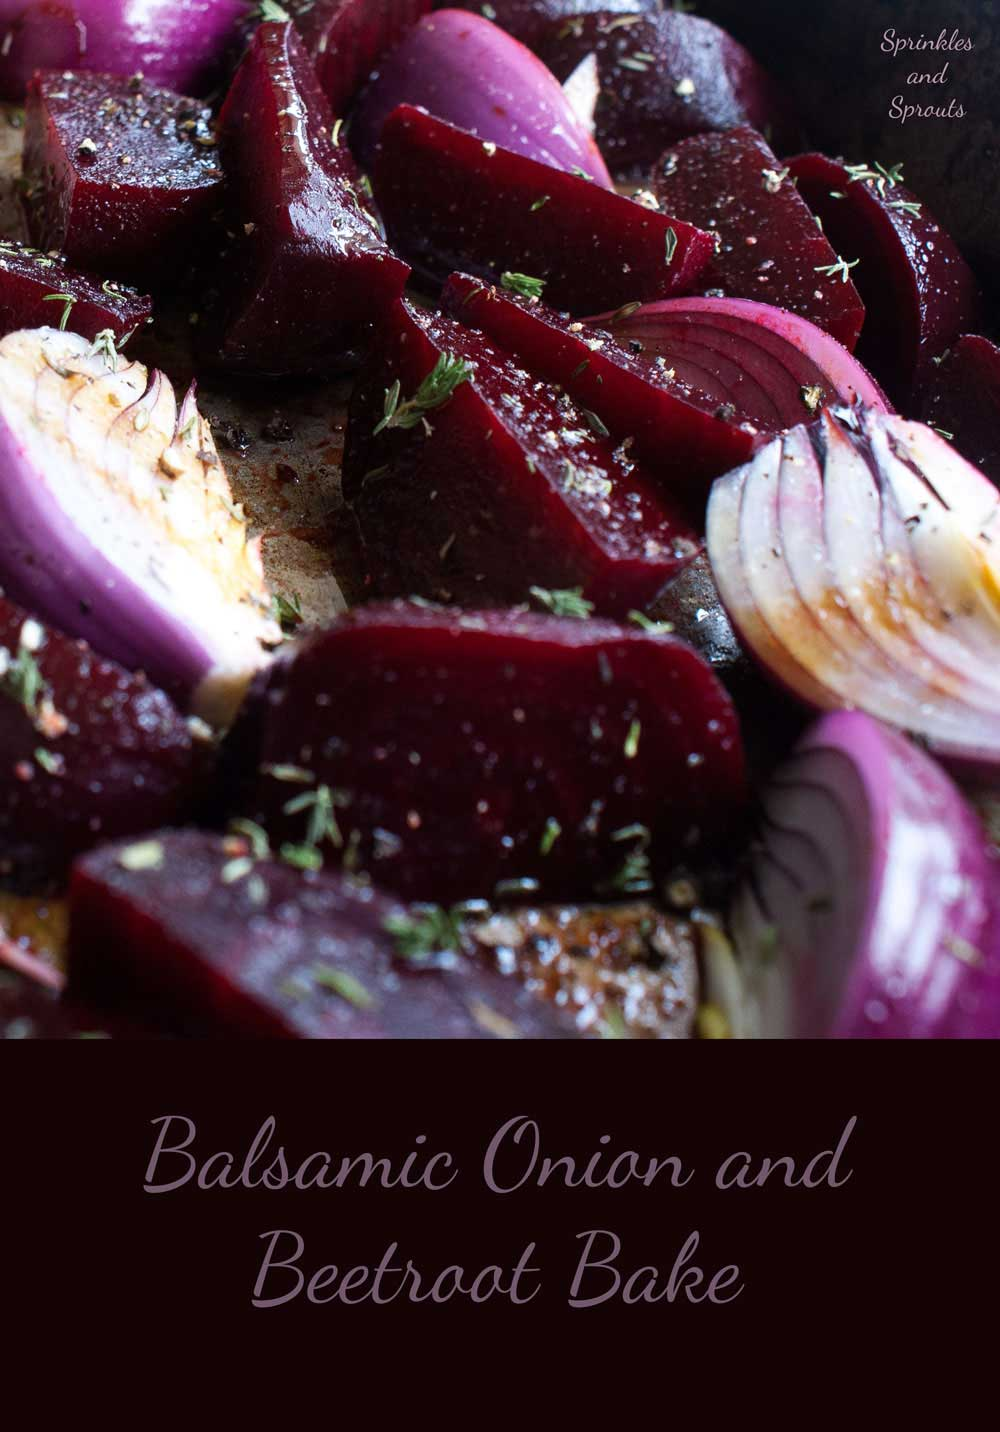 Balsamic onion and beetroot bake. A deliciously and naturally sweet side dish that is perfect for serving with grilled meats.